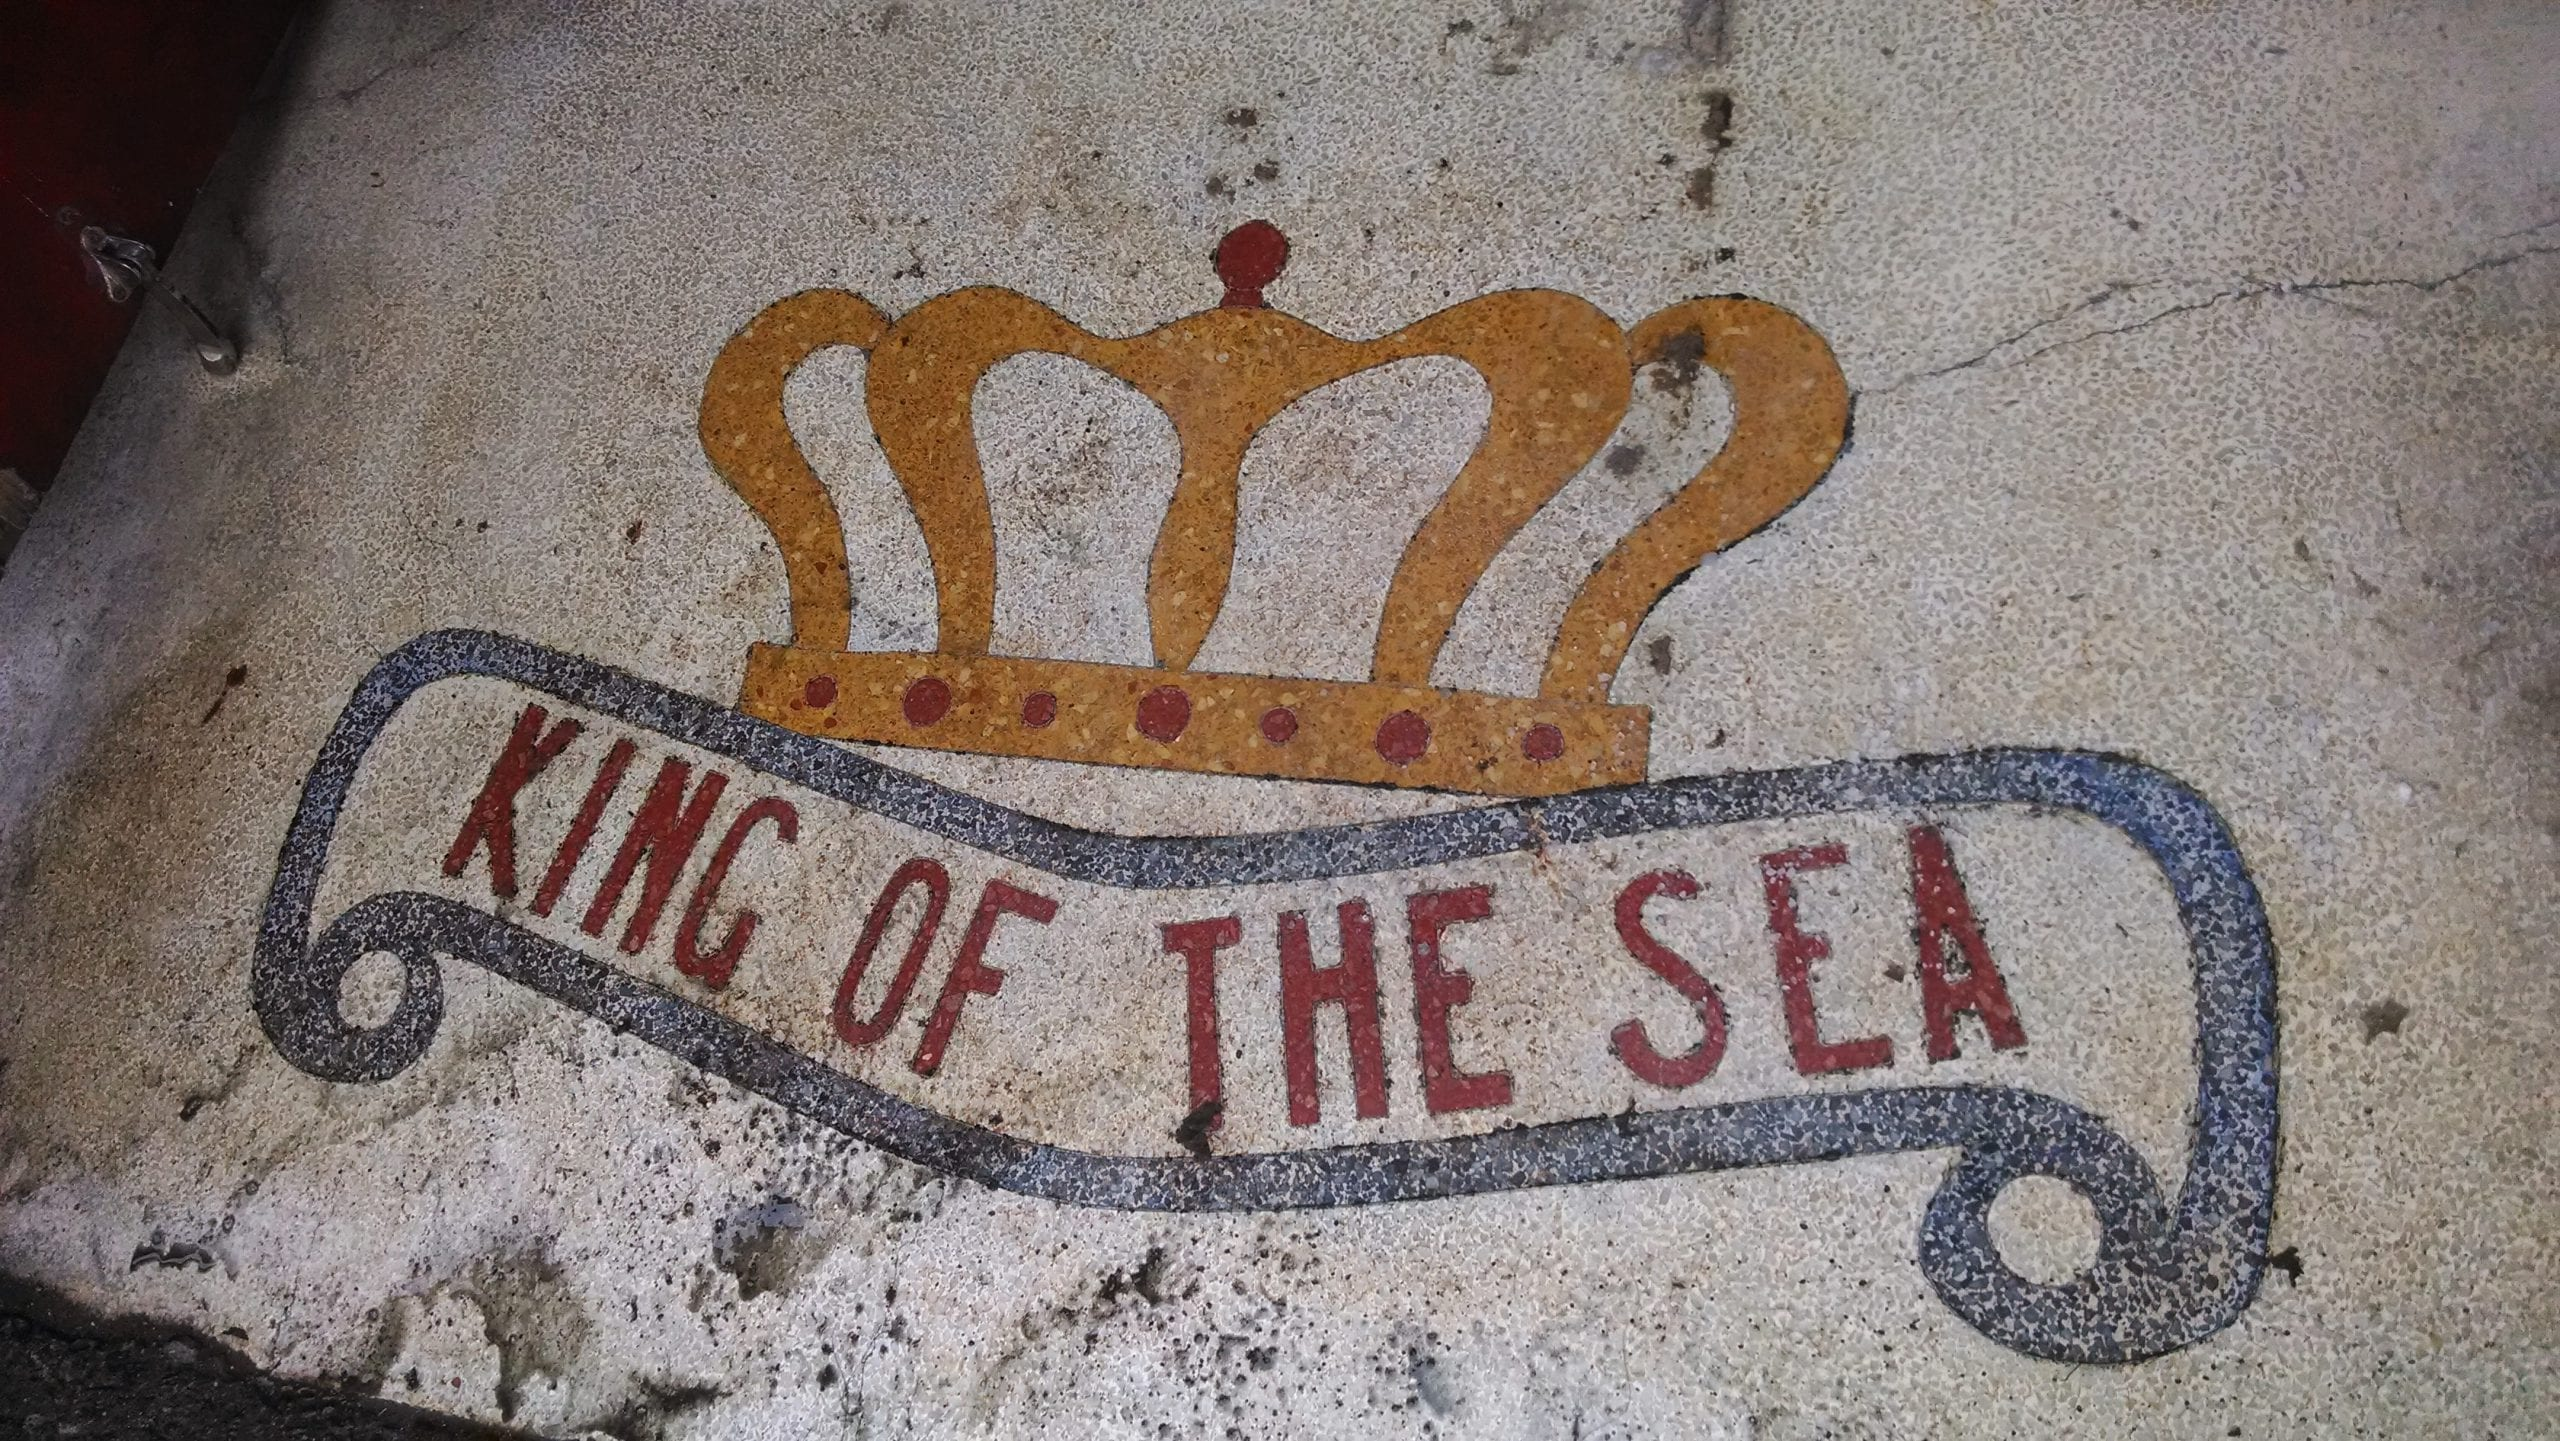 old King of the Sea sign is still there